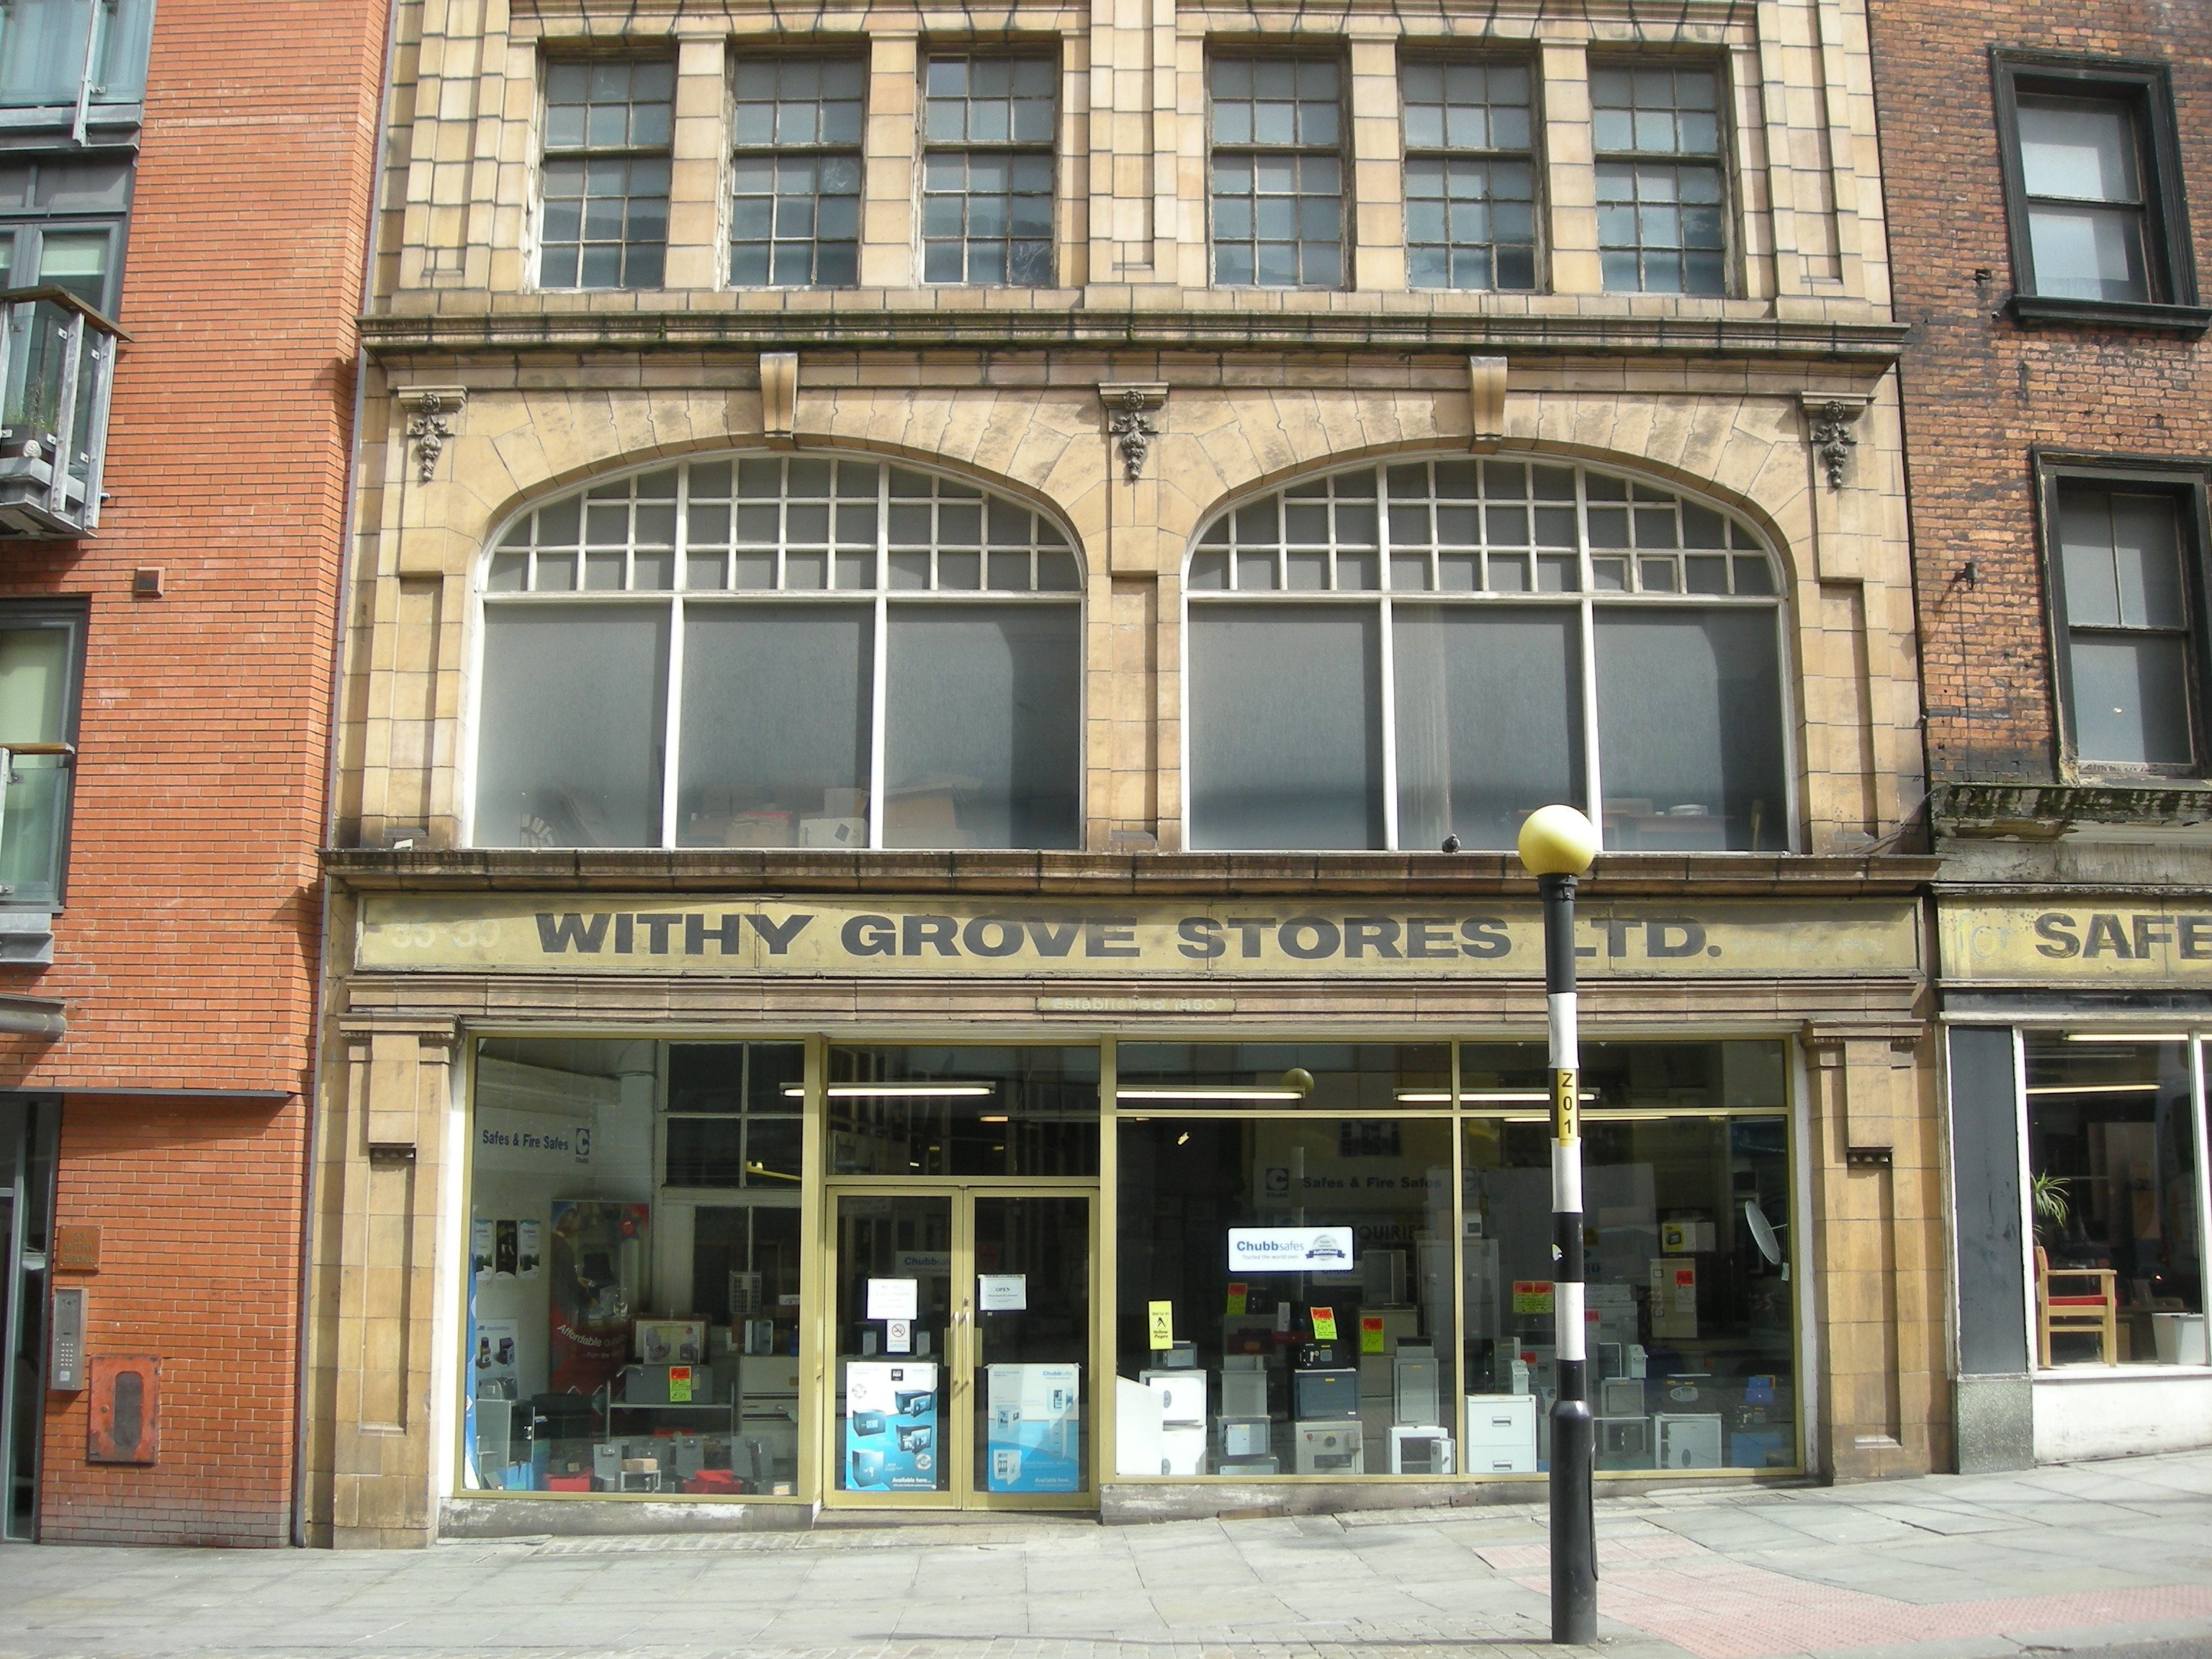 Withy Grove Stores Ltd, 35-39 Withy Grove, Manchester – established 1850